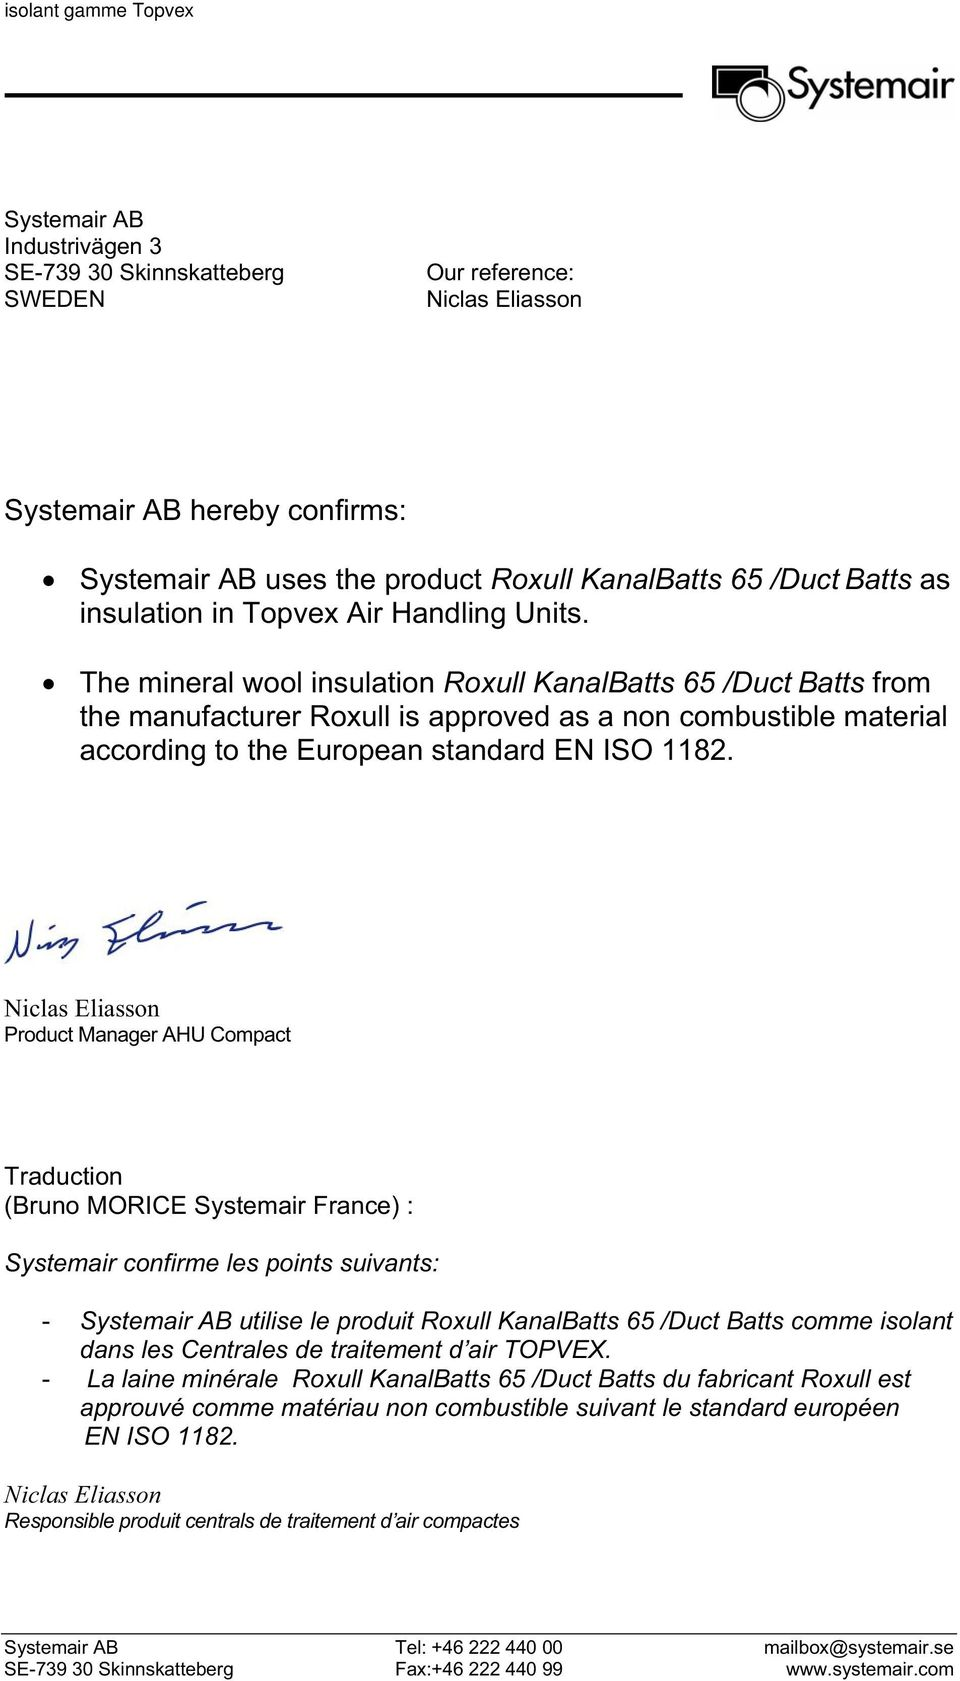 The mineral wool insulation Roxull KanalBatts 65 /Duct Batts from the manufacturer Roxull is approved as a non combustible material according to the European standard EN ISO 1182.